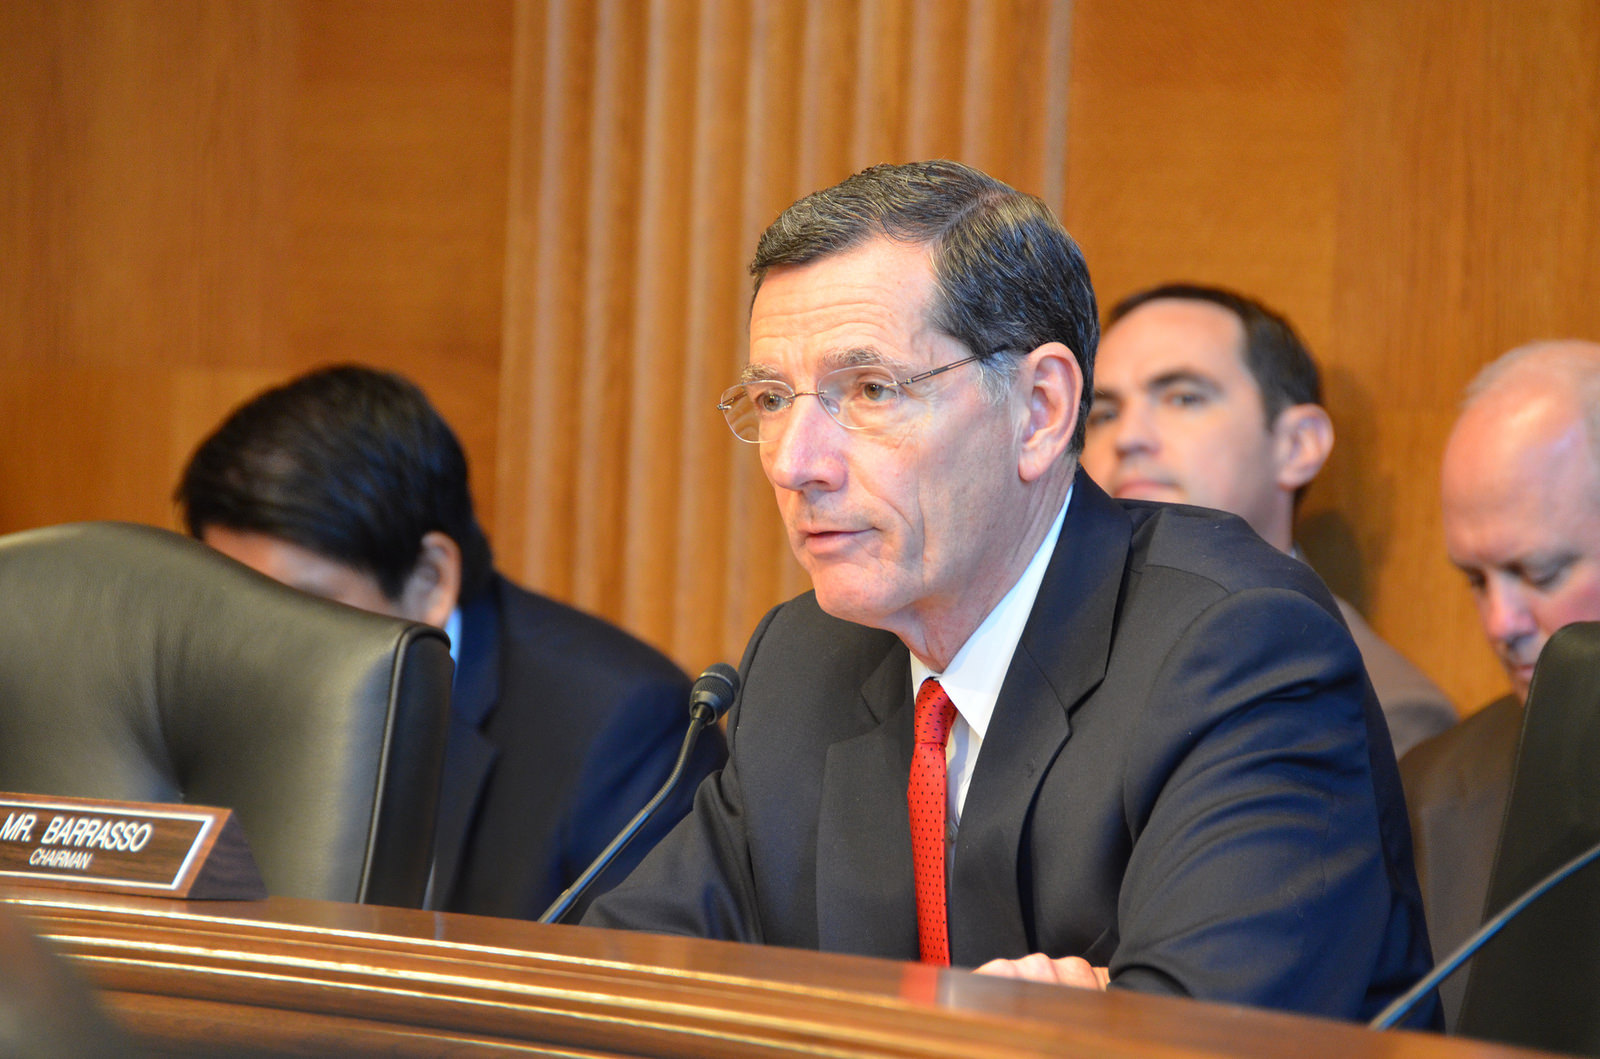 John Barrasso: Building a prosperous and thriving Indian Country